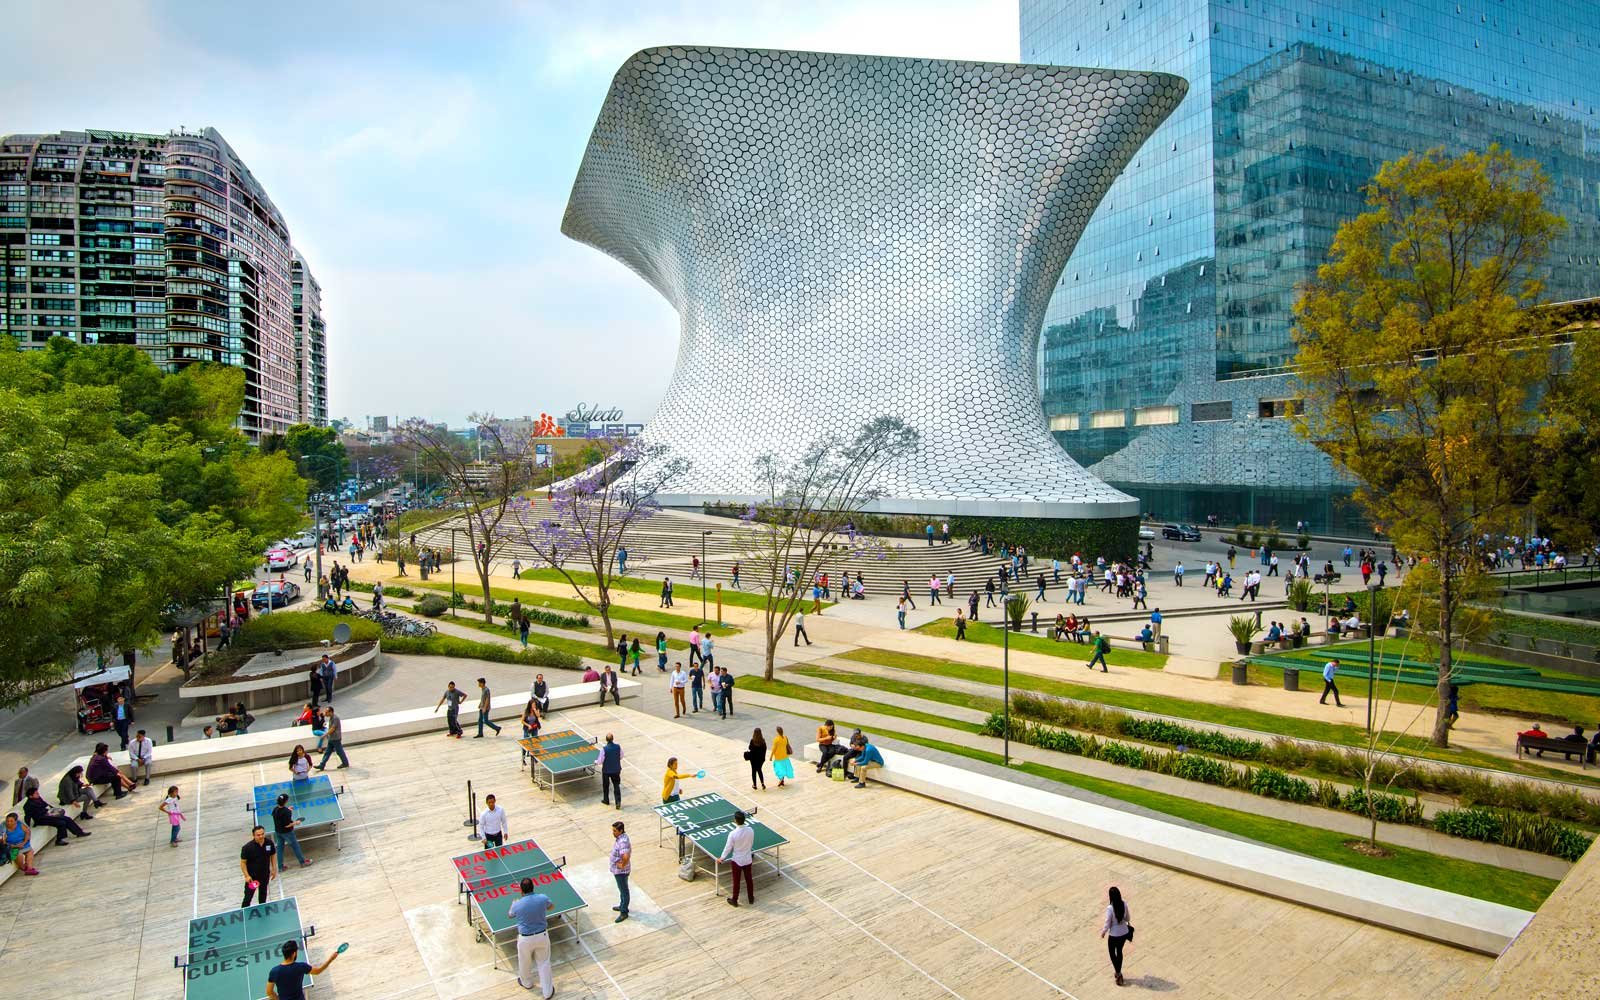 The aluminium paneled Soumaya Musuem stands in Plaza Carso in the Polanco district of Mexico City.